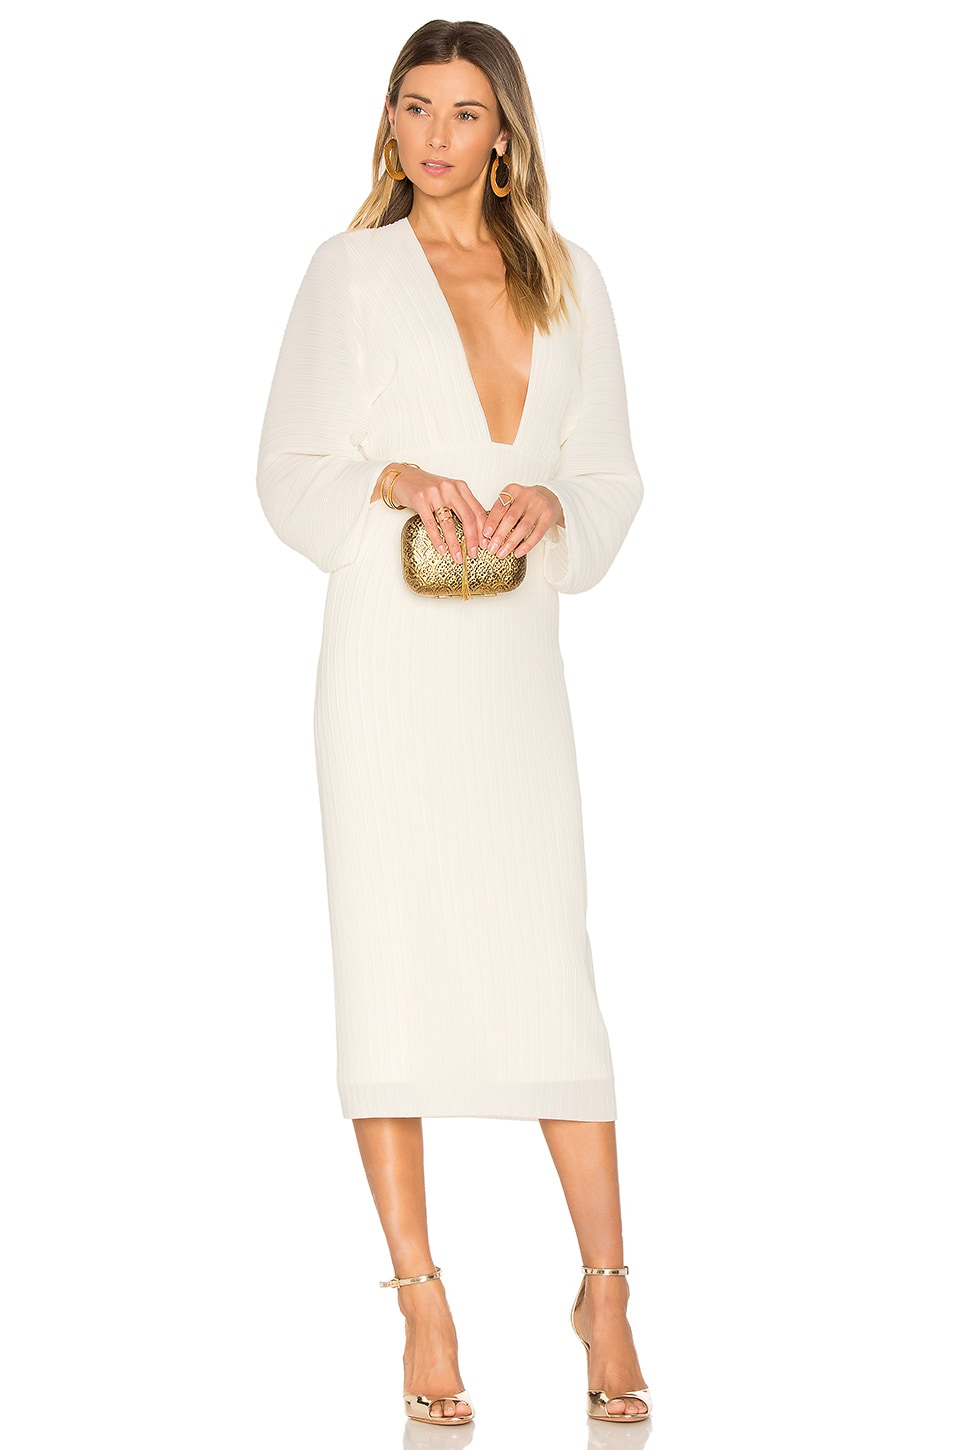 SOLACE London Phillipa Dress in Cream